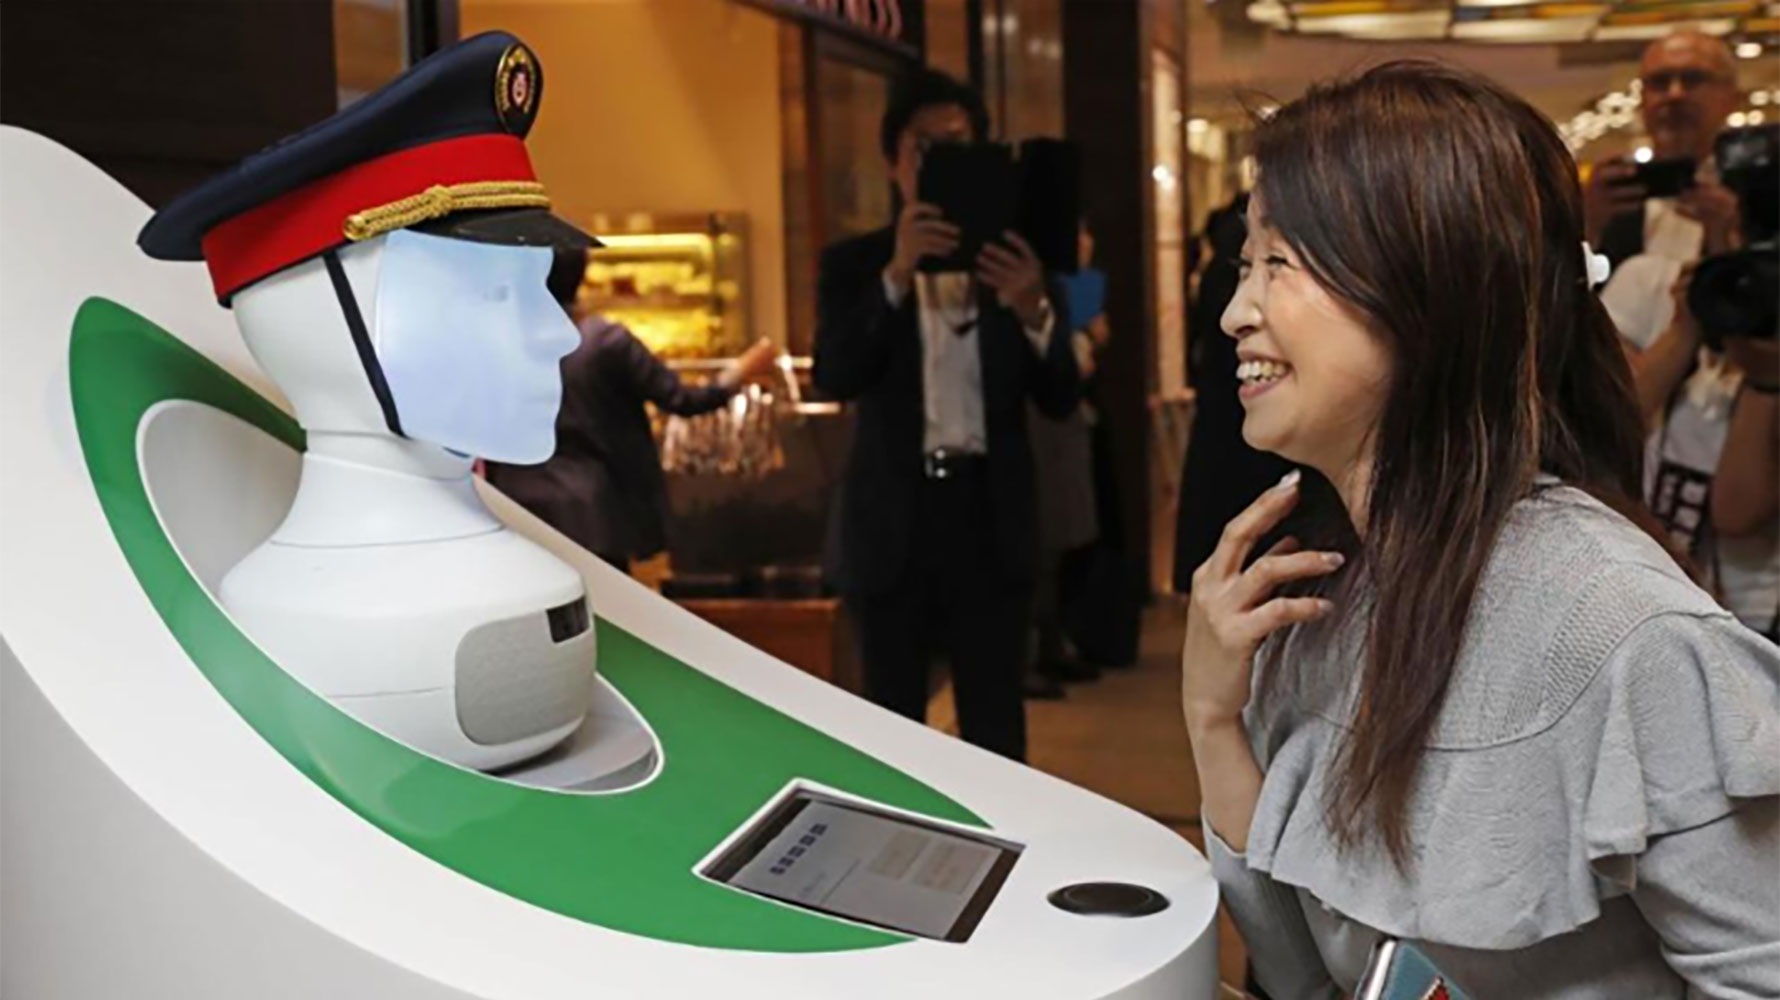 5 ways social robots can change post-COVID tourism